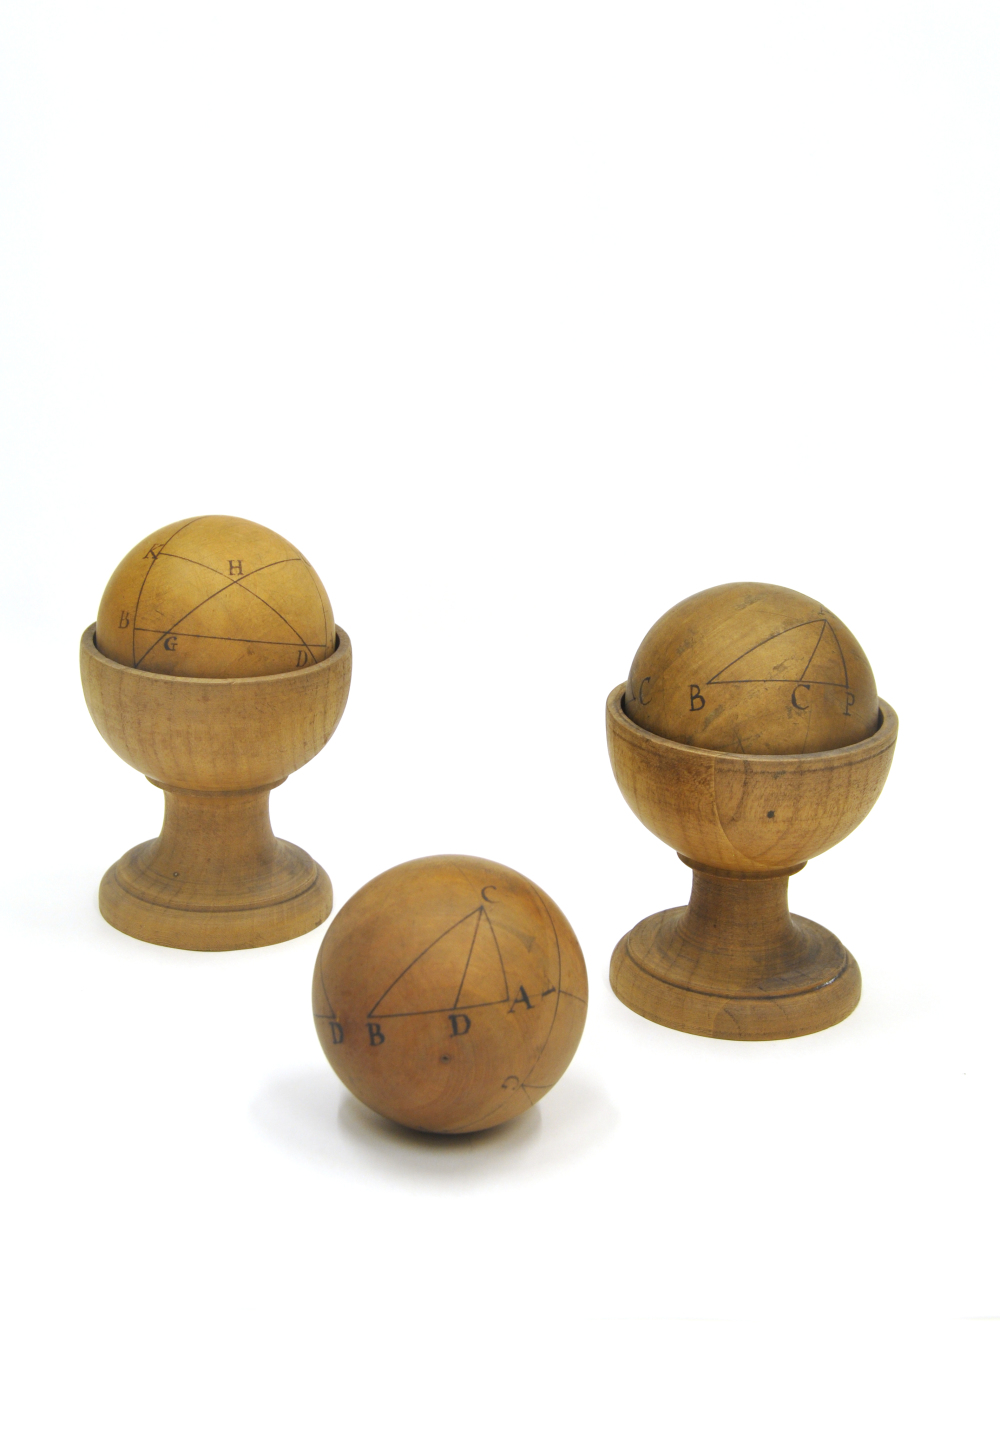 preview image for Trigonometrical Demonstration Spheres, English?, c. 1700